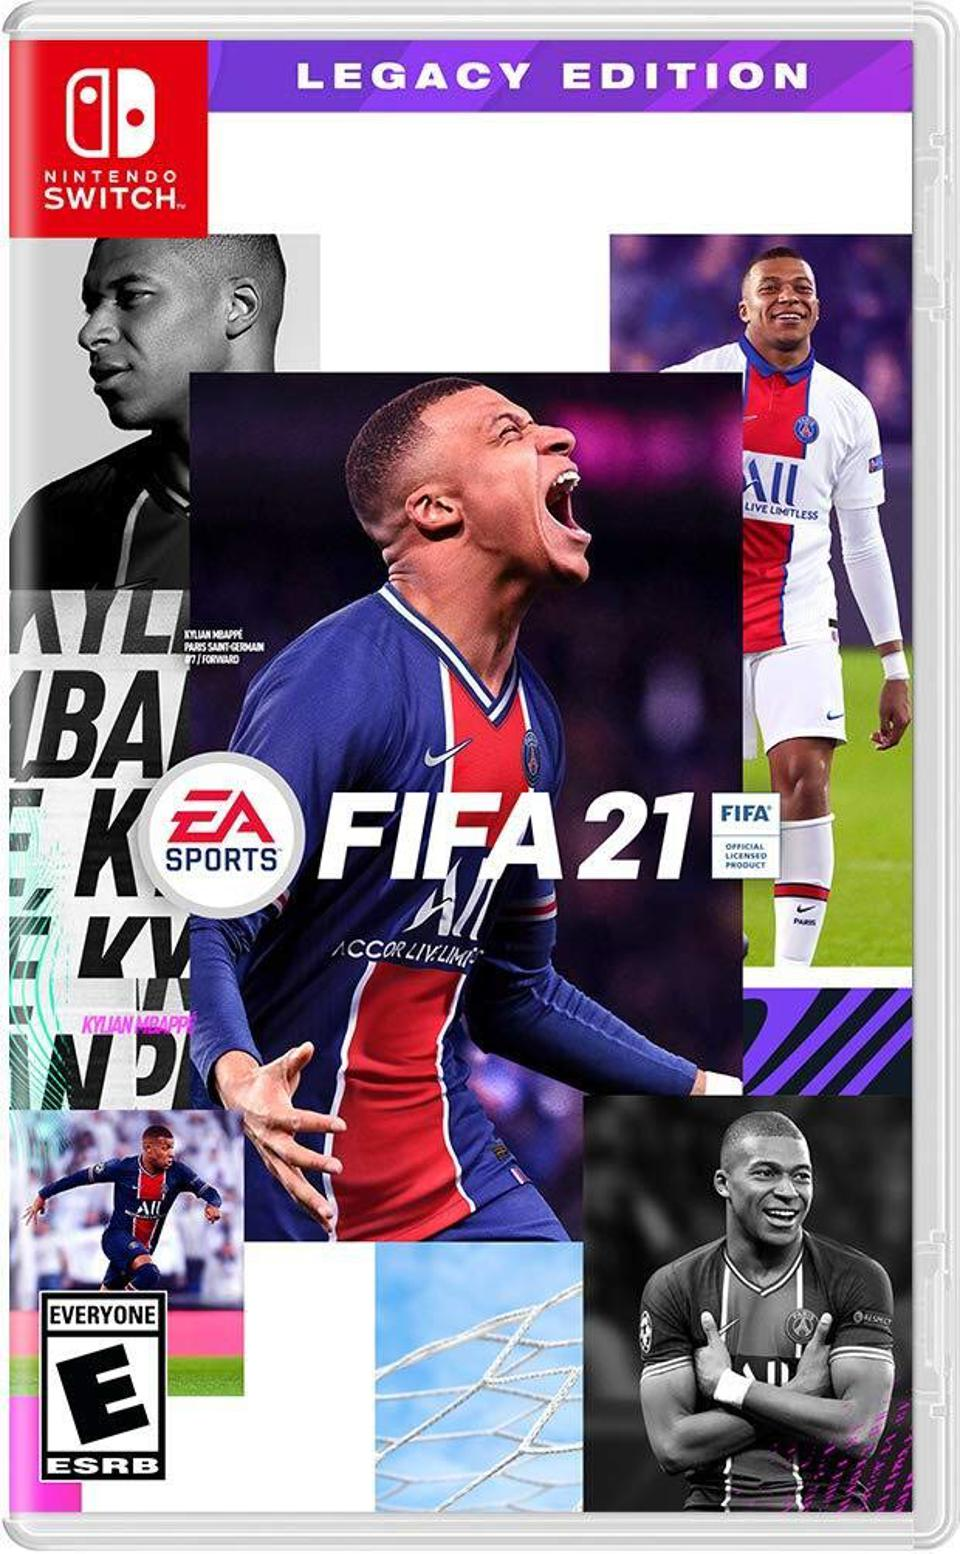 FIFA 21 Legacy Edition for Nintendo Switch retail box art